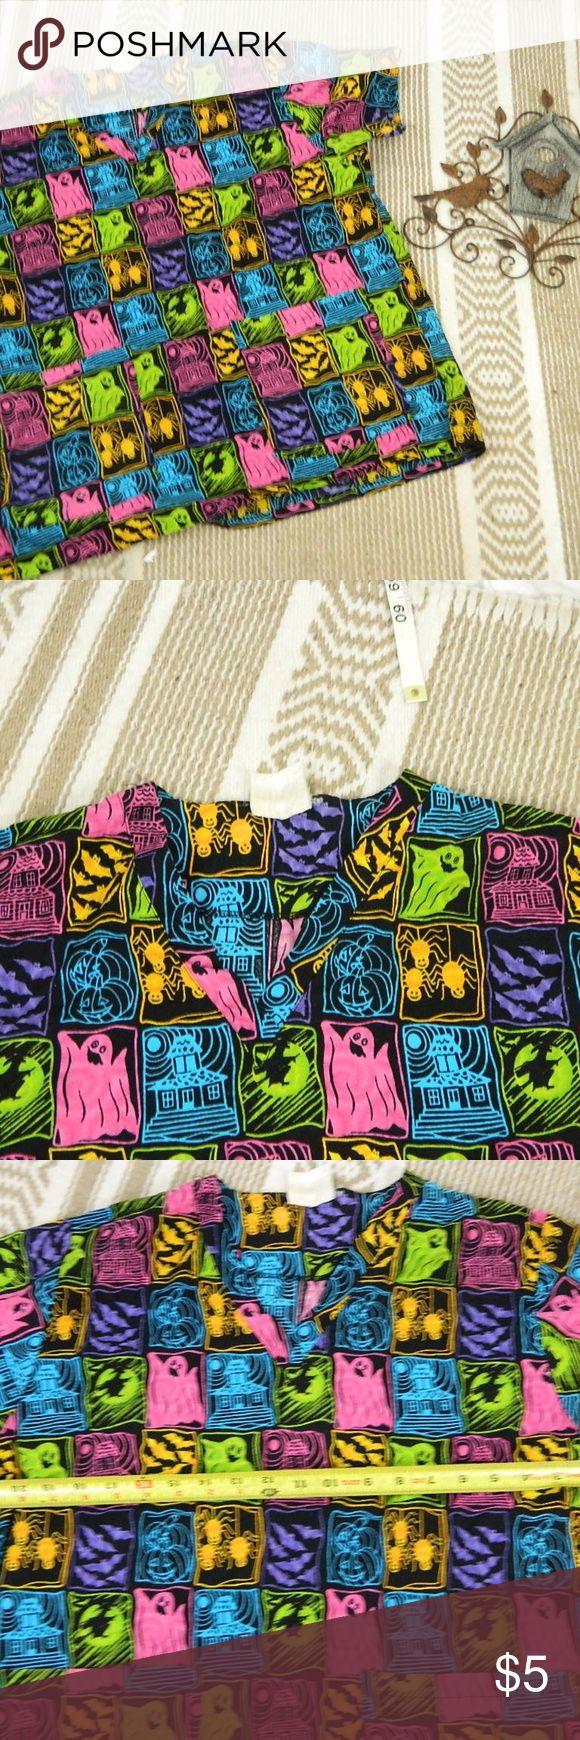 """Halloween Scrub Top Size ?Large?- not able to read Halloween Scrub Top Size ?Large?- not able to read size tag 2 pockets  armpit to armpit 22"""" length 25"""" unbranded Tops"""